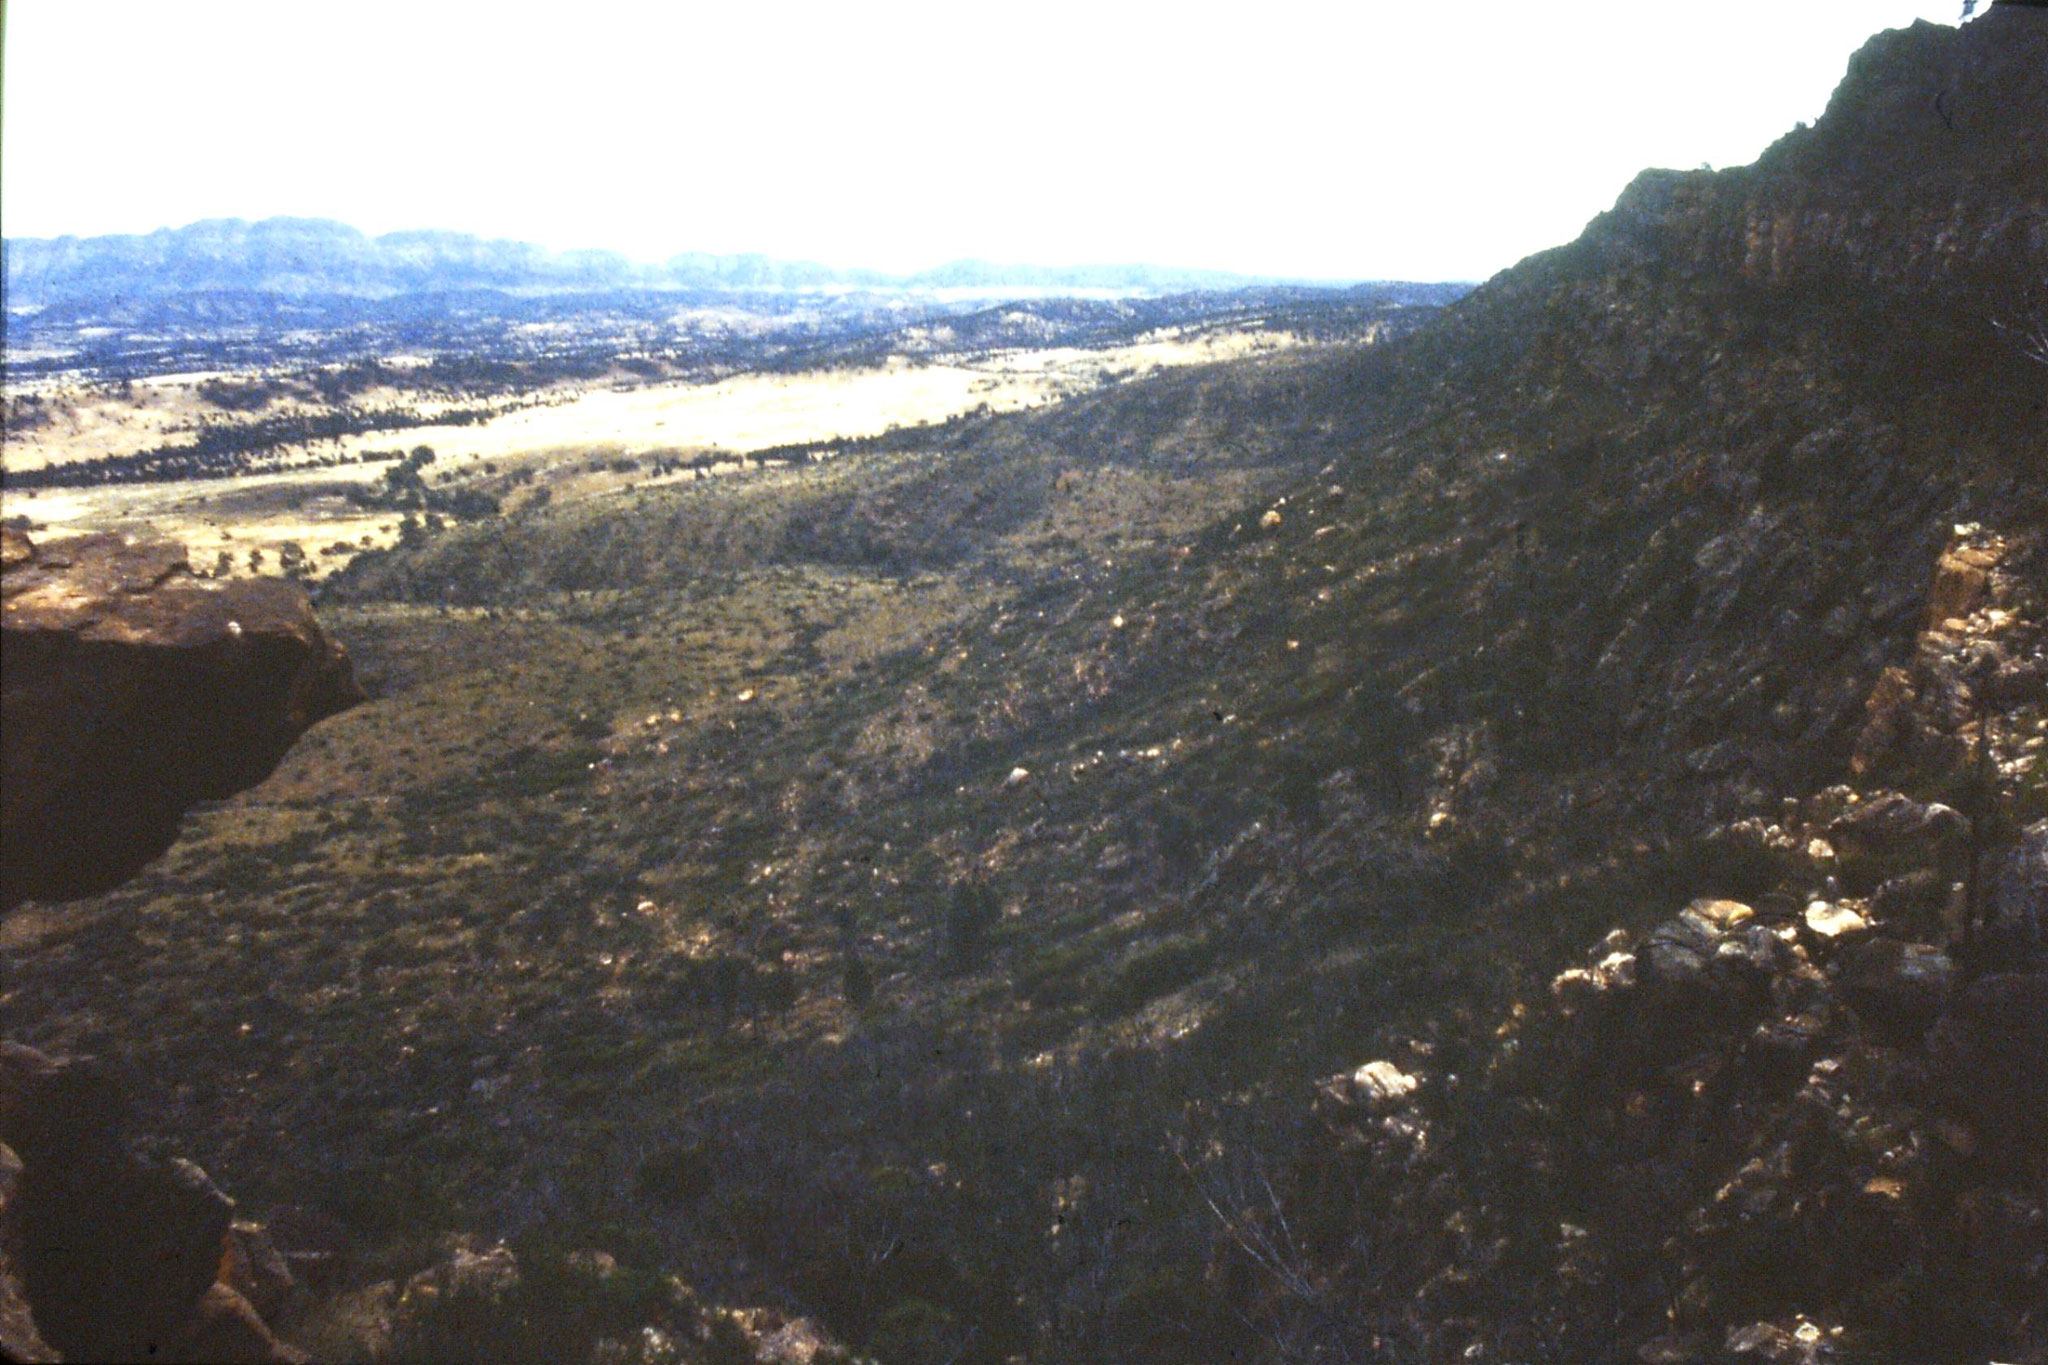 6/11/1990: 32: Flinders Ranges National Park, view toward Salt Lake